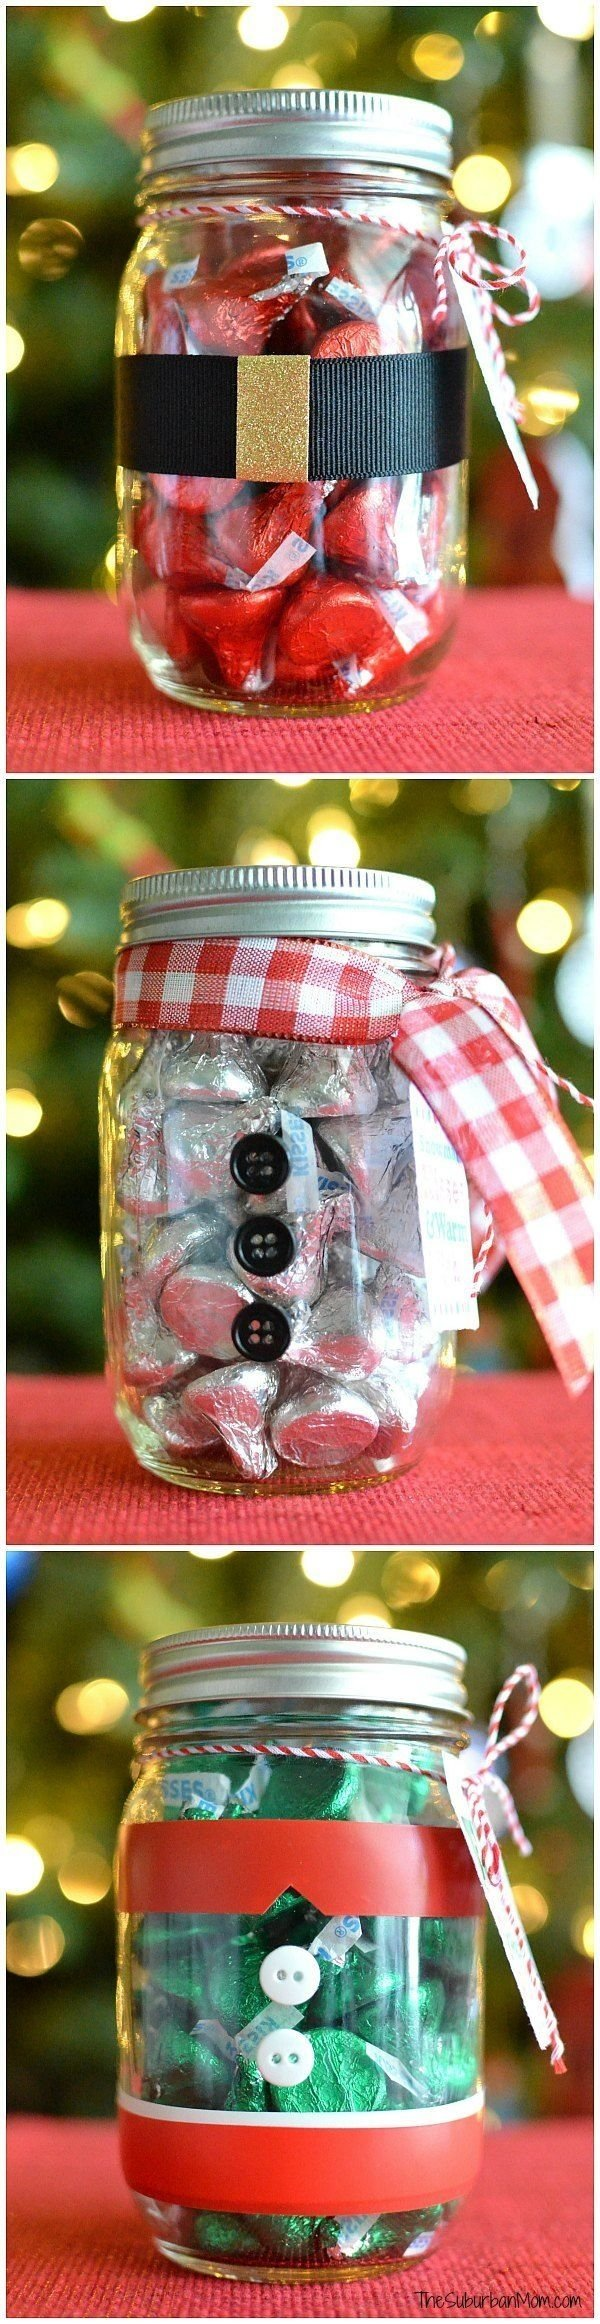 10 Great Holiday Gift Ideas For Employees 36 best teacher gifts images on pinterest gift ideas creative 4 2020